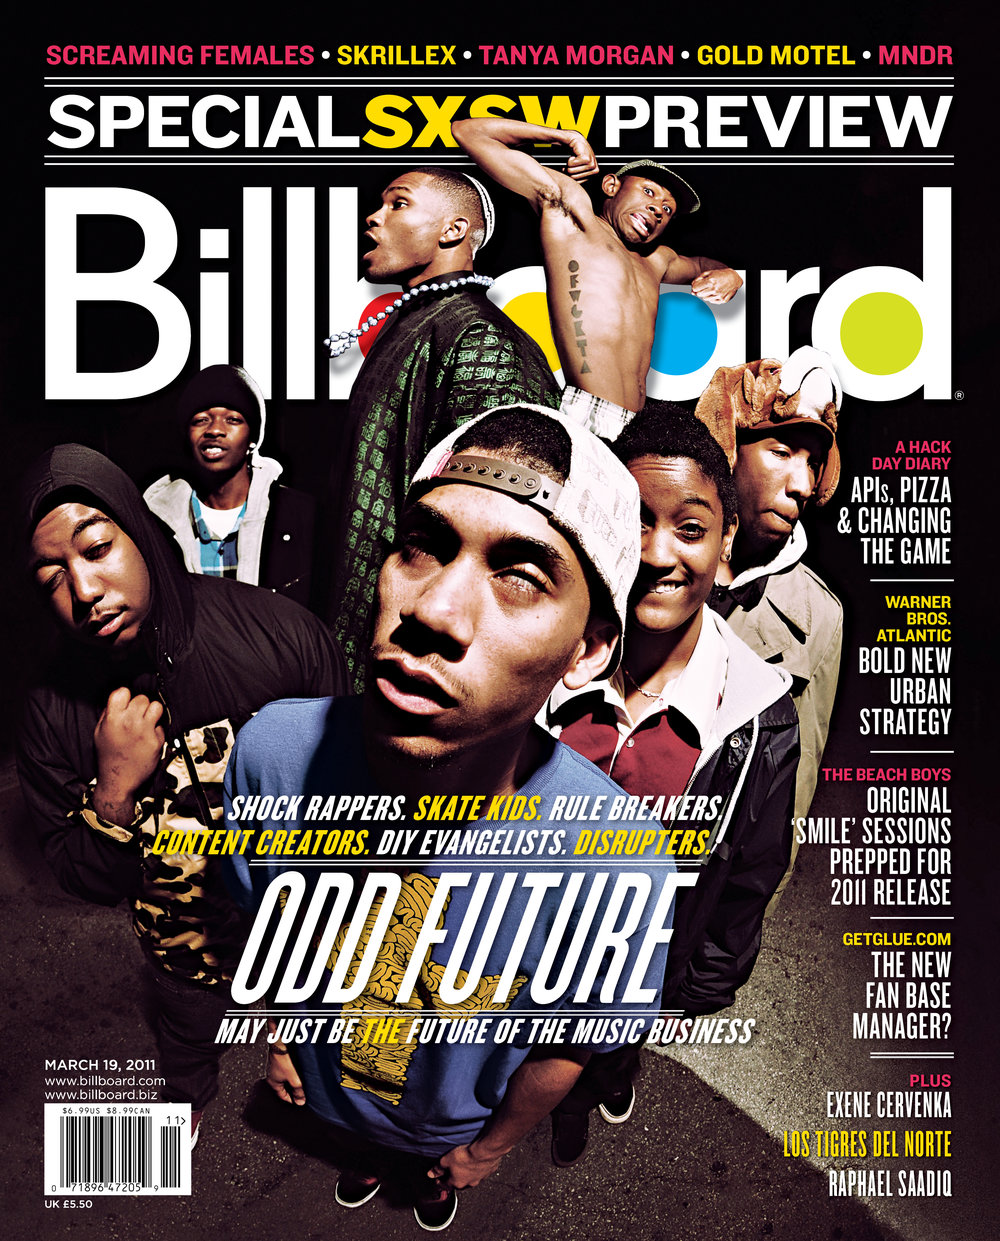 Julian's 2011 Billboard Magazine cover